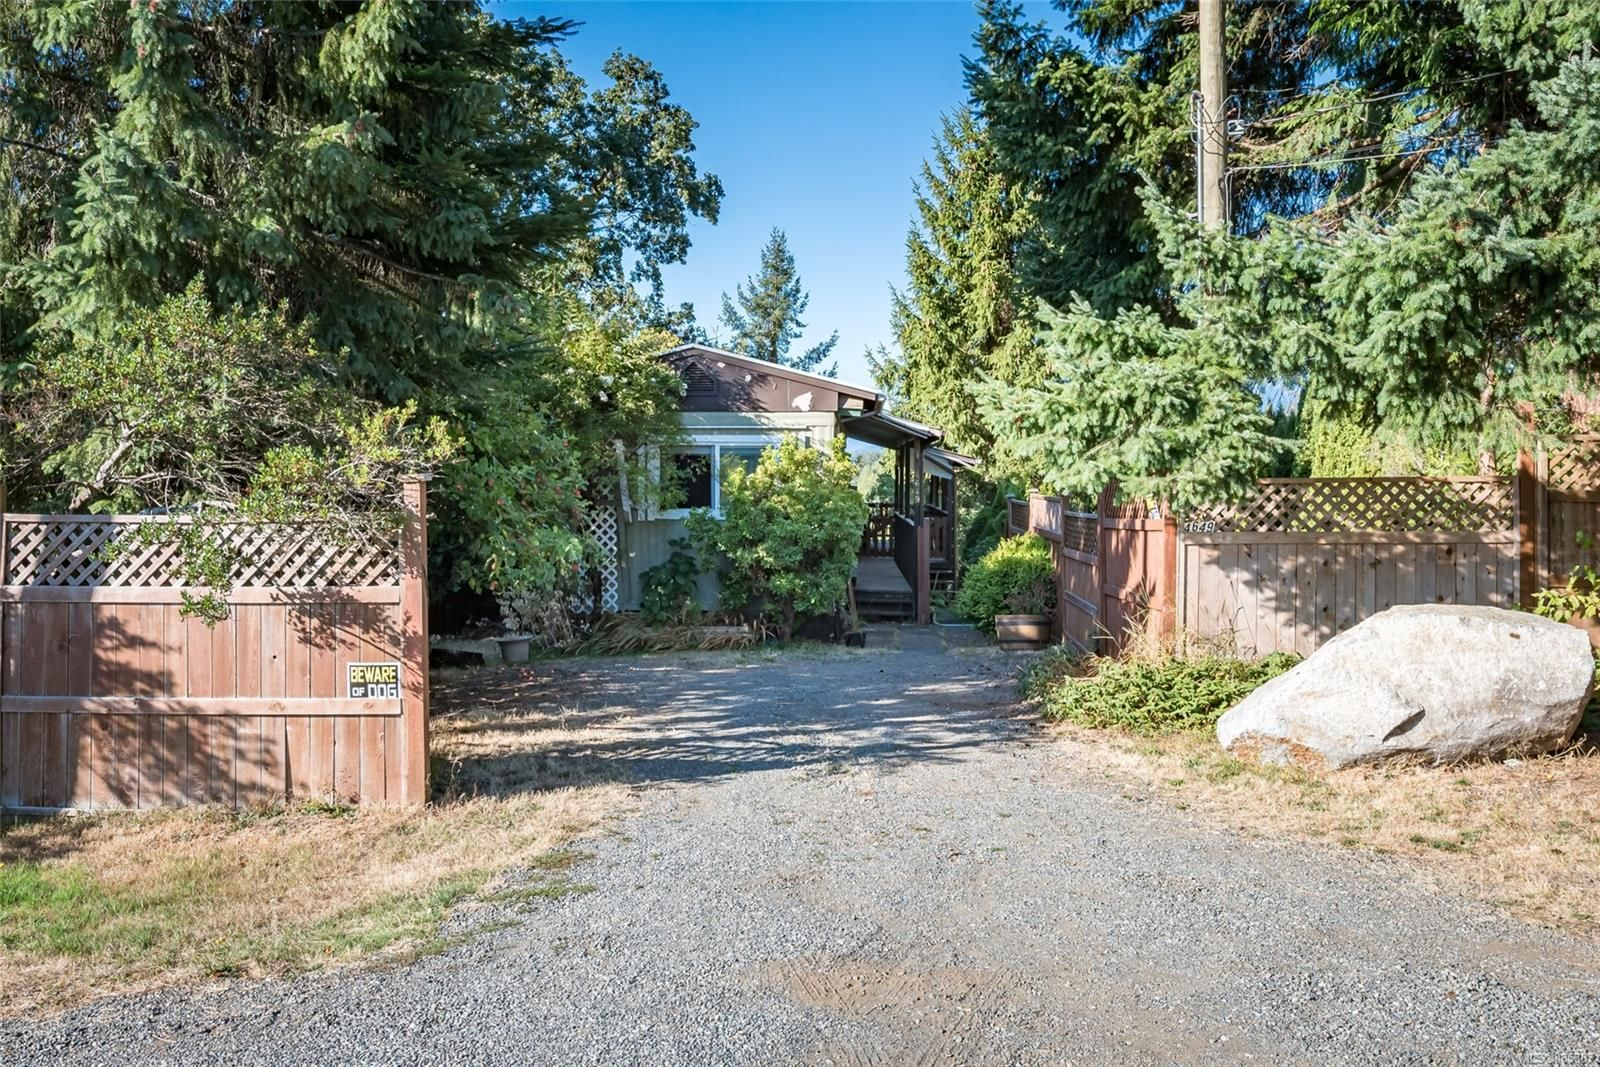 Main Photo: 4649 McQuillan Rd in : CV Courtenay East Manufactured Home for sale (Comox Valley)  : MLS®# 885887